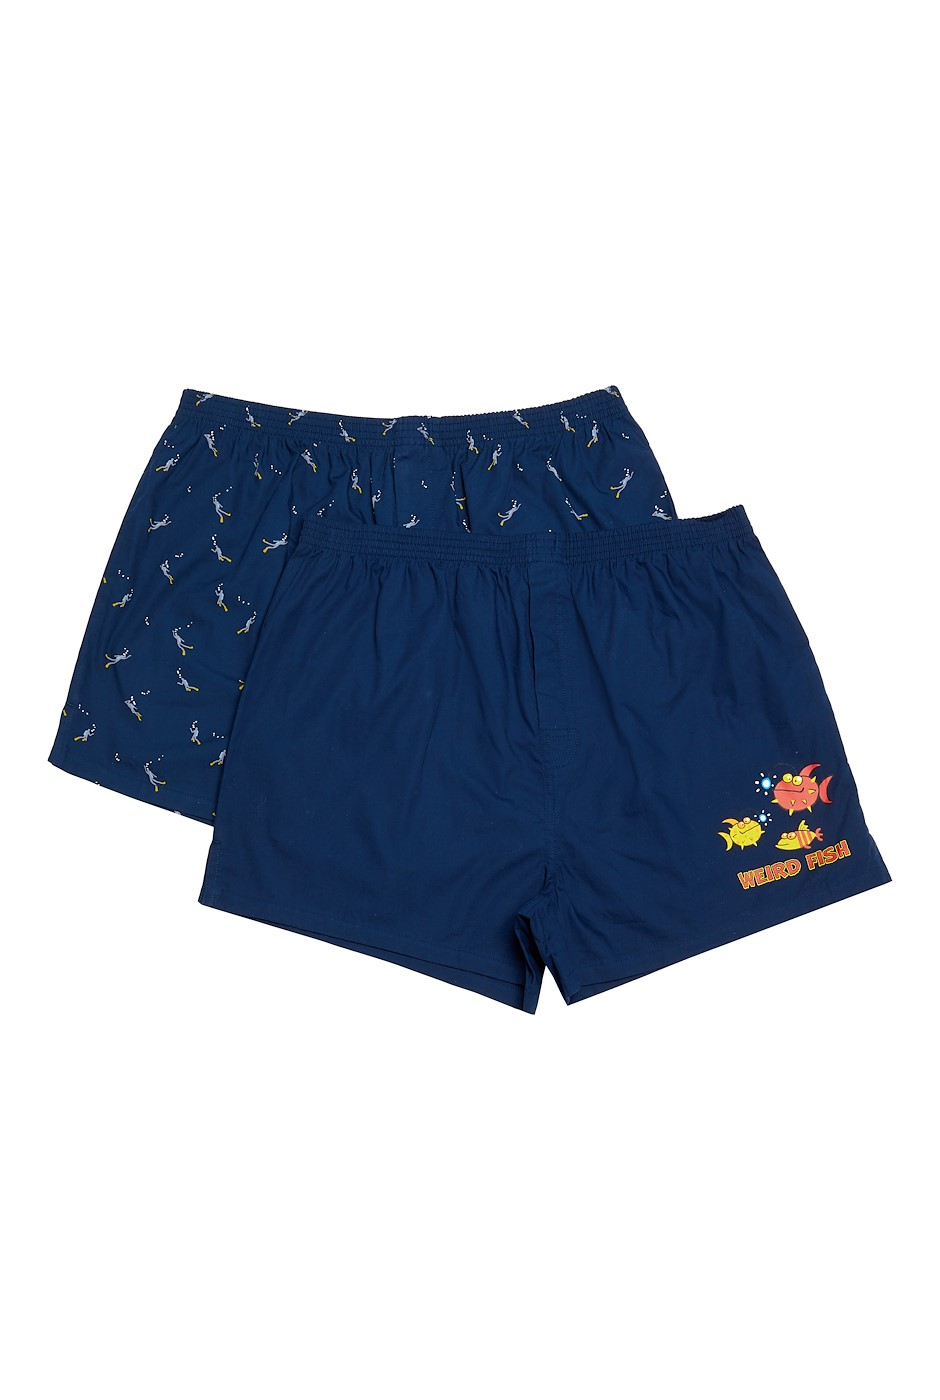 Harley Boxer Shorts Twin Pack Navy